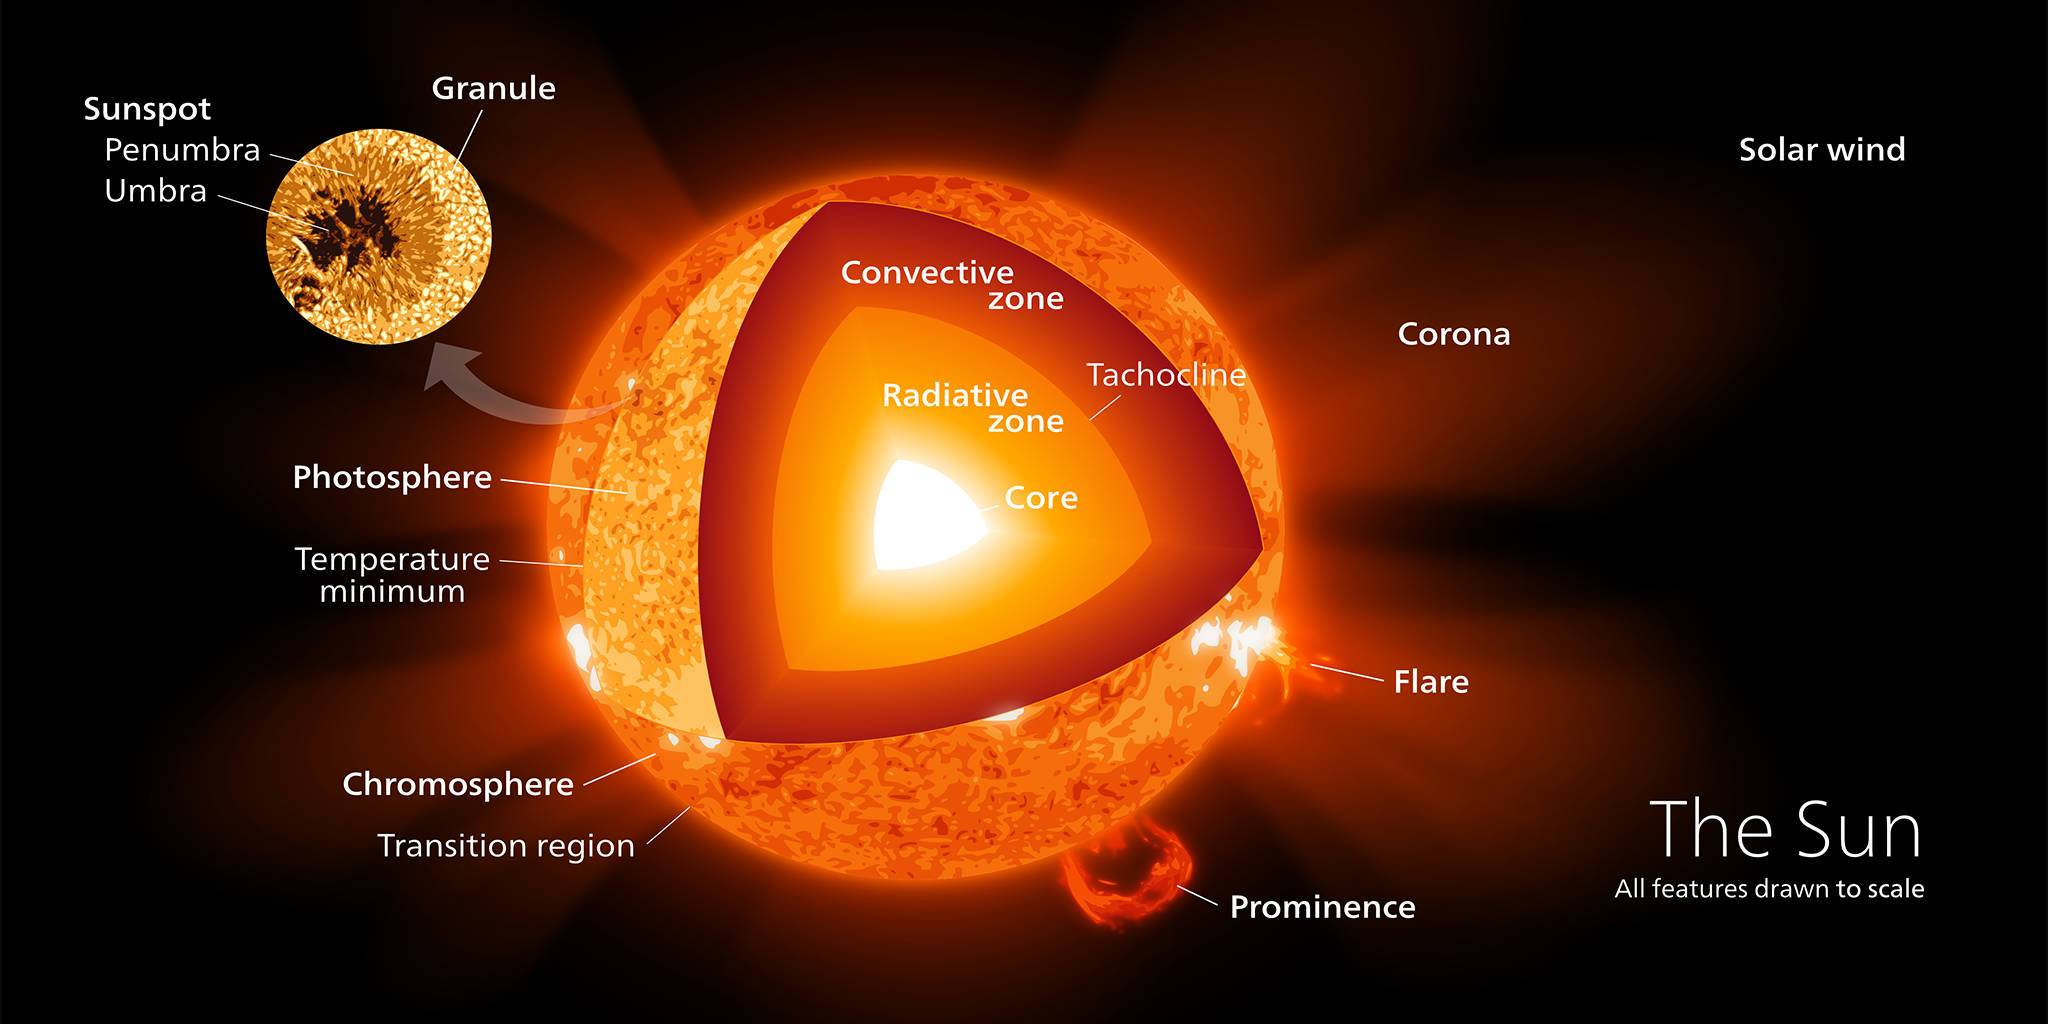 The Sun<em>Credit: https://commons.wikimedia.org/wiki/User:Kelvinsong</em>